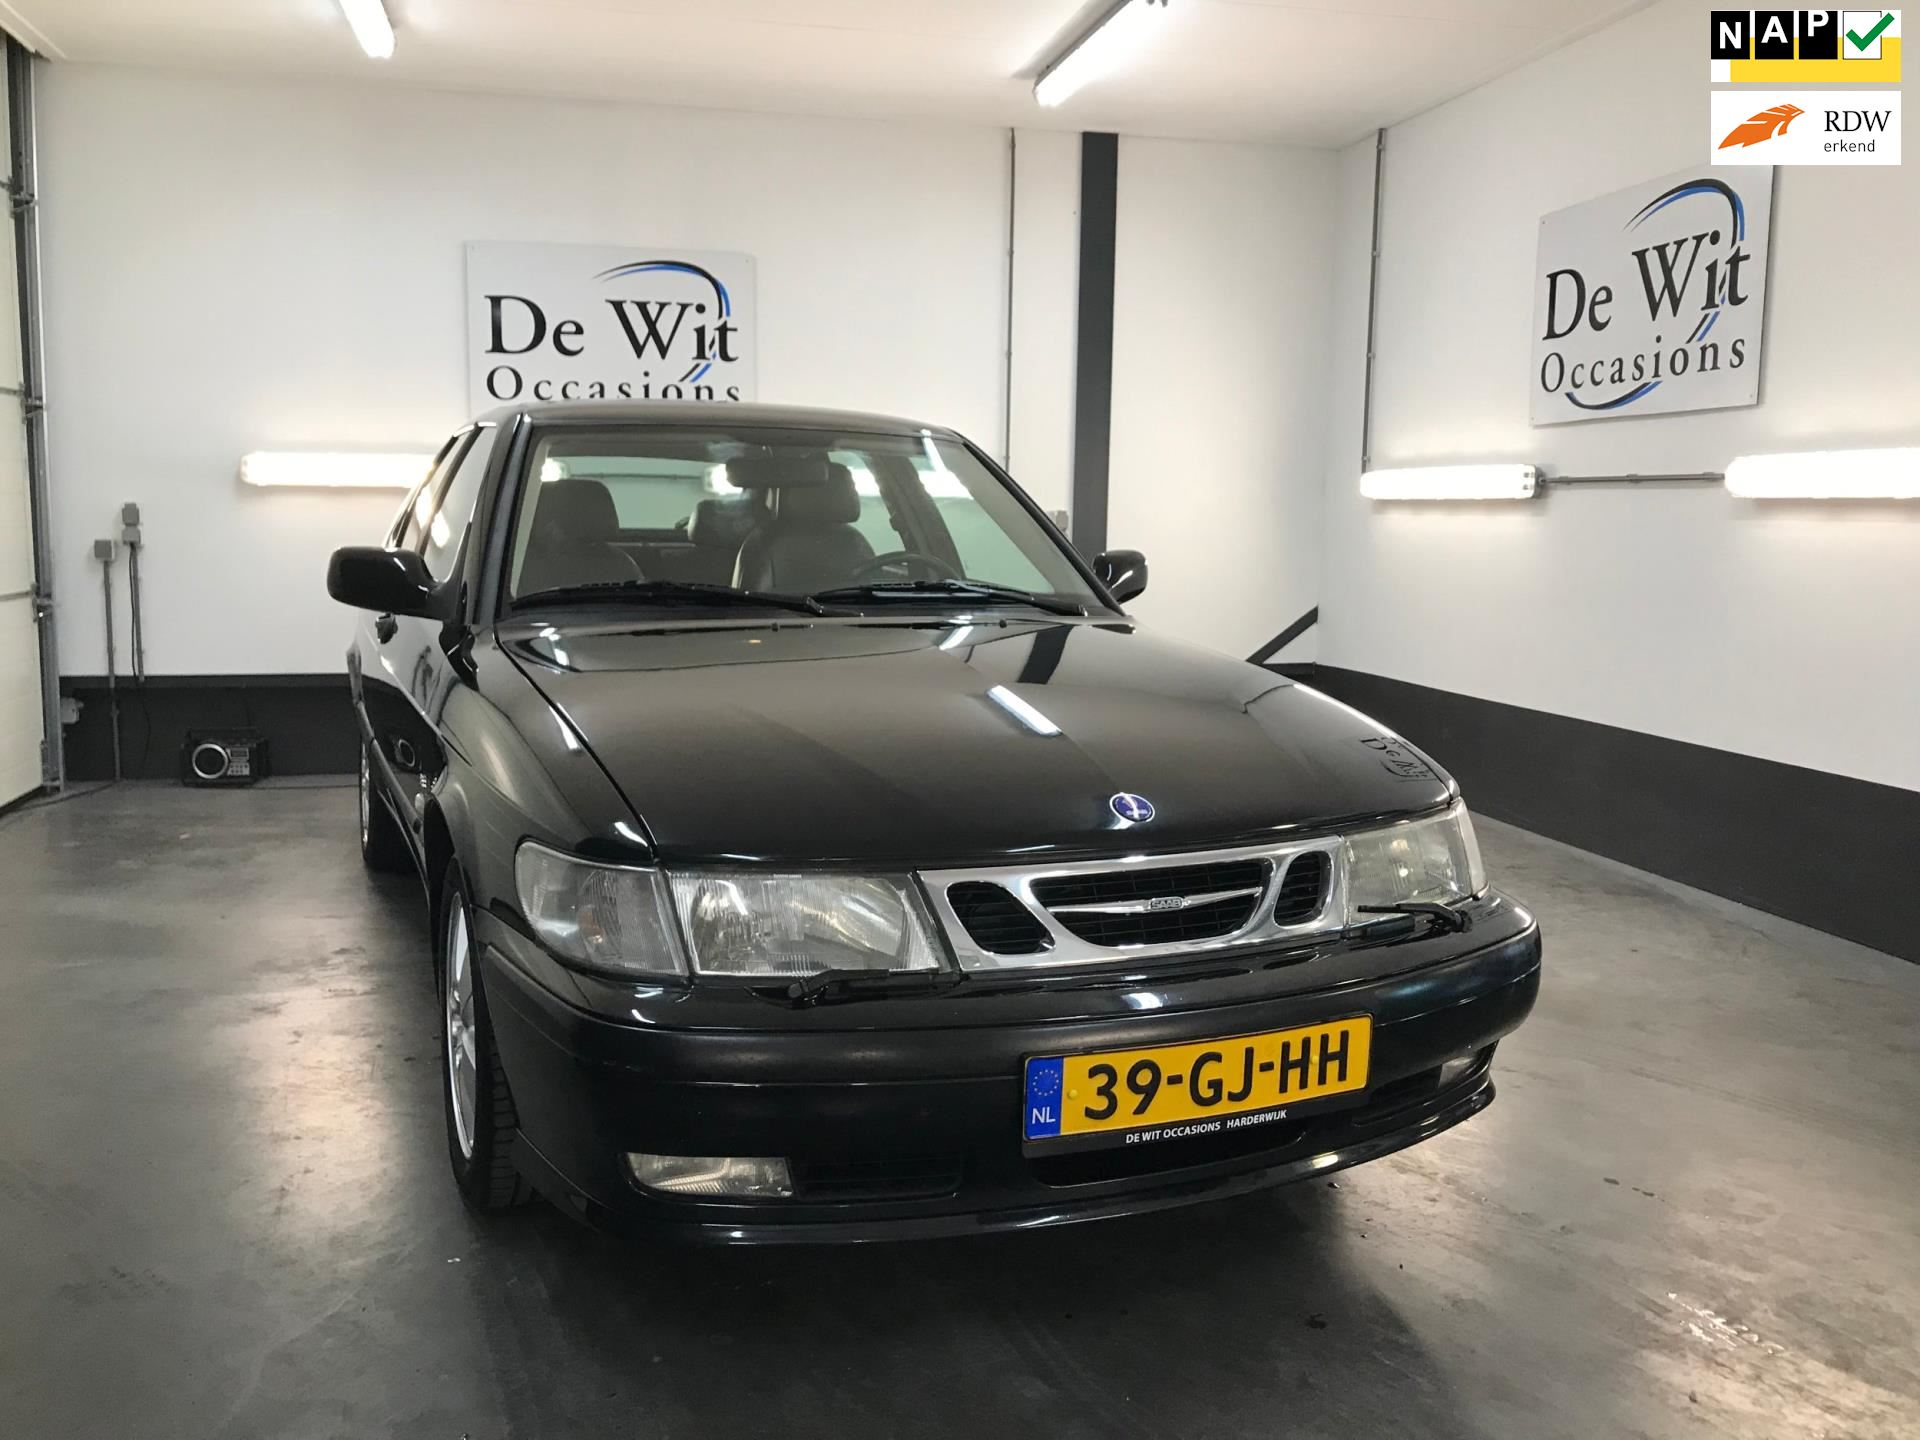 Saab 9-3 occasion - De Wit Occasions